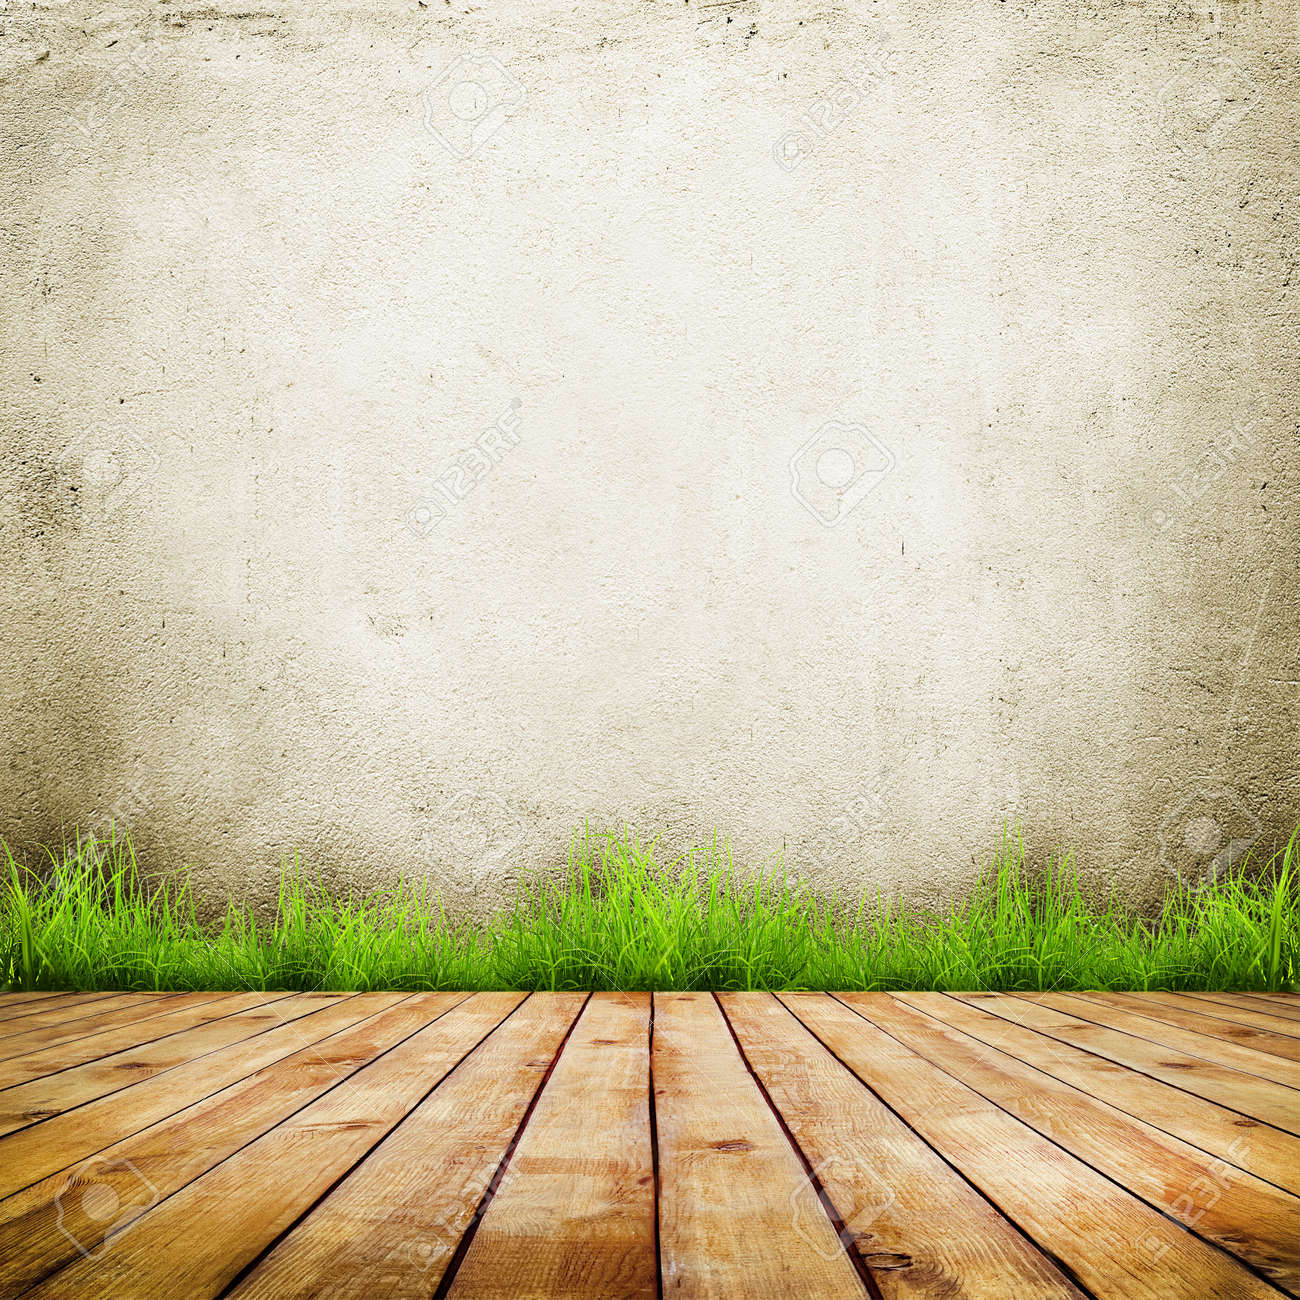 wood floors background. Old Wall And Green Grass On Wood Floor Background Stock Photo  24199368 Wall And Green Grass On Wood Floor Background